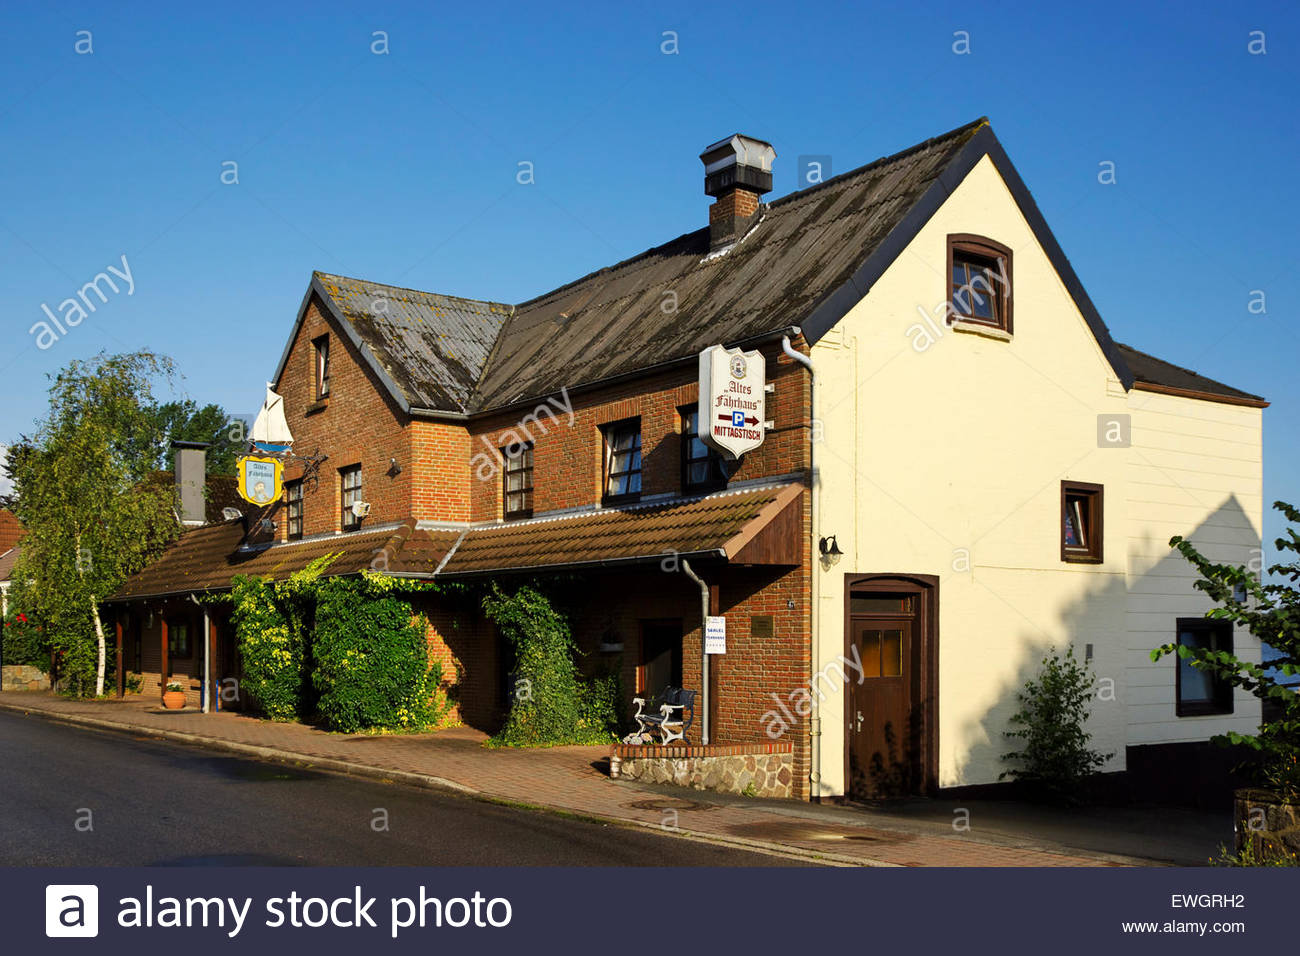 Altes Fährhaus — Old Ferryhouse — restaurant in Fahrdorf near the reconstructed Viking settlement of Haithabu, - Stock Image